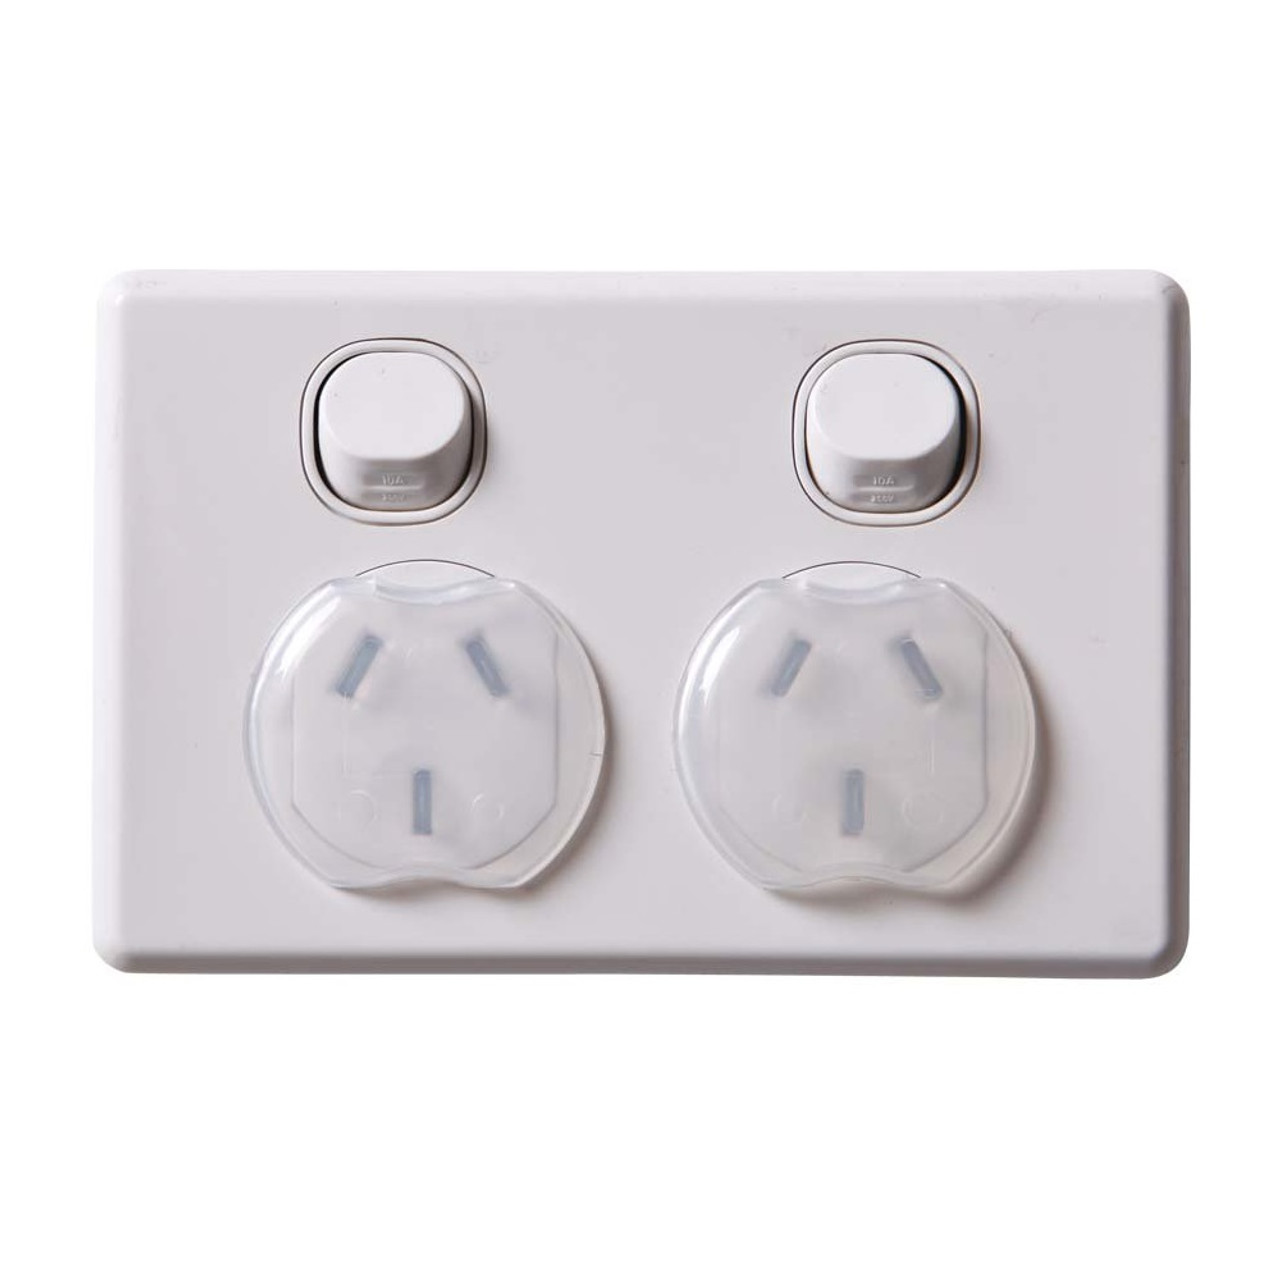 Dreambaby Outlet Plugs 12 Pack for AU NZ